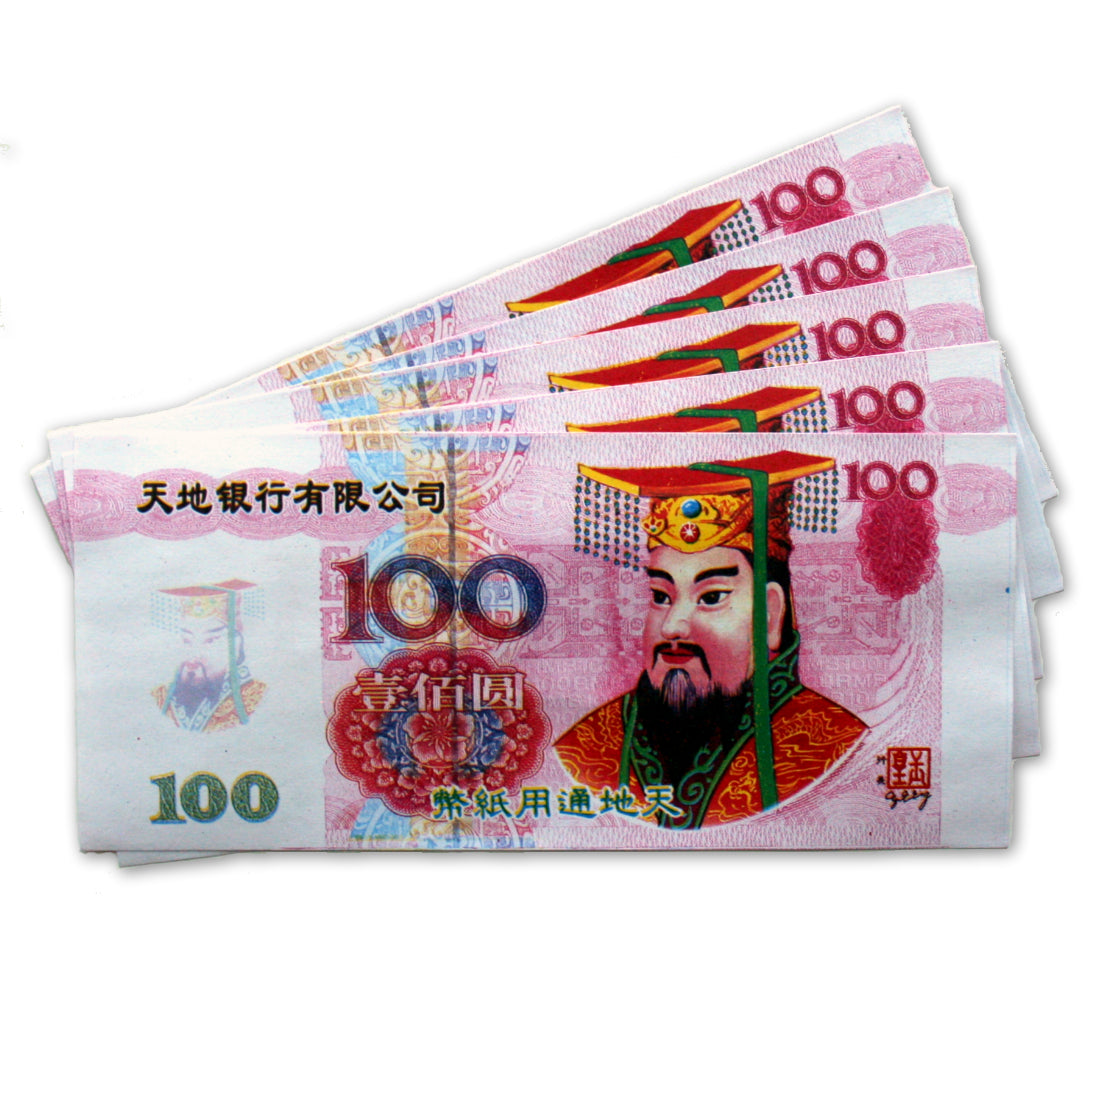 Funeral Strengthen Connection with Your Ancestors Bring Good Luck Wealth and Health 800 Pcs Chinese Joss Paper Money Hell Bank Note $10,000,000,000,000,000 Ancestor Money for Tomb-Sweeping Day